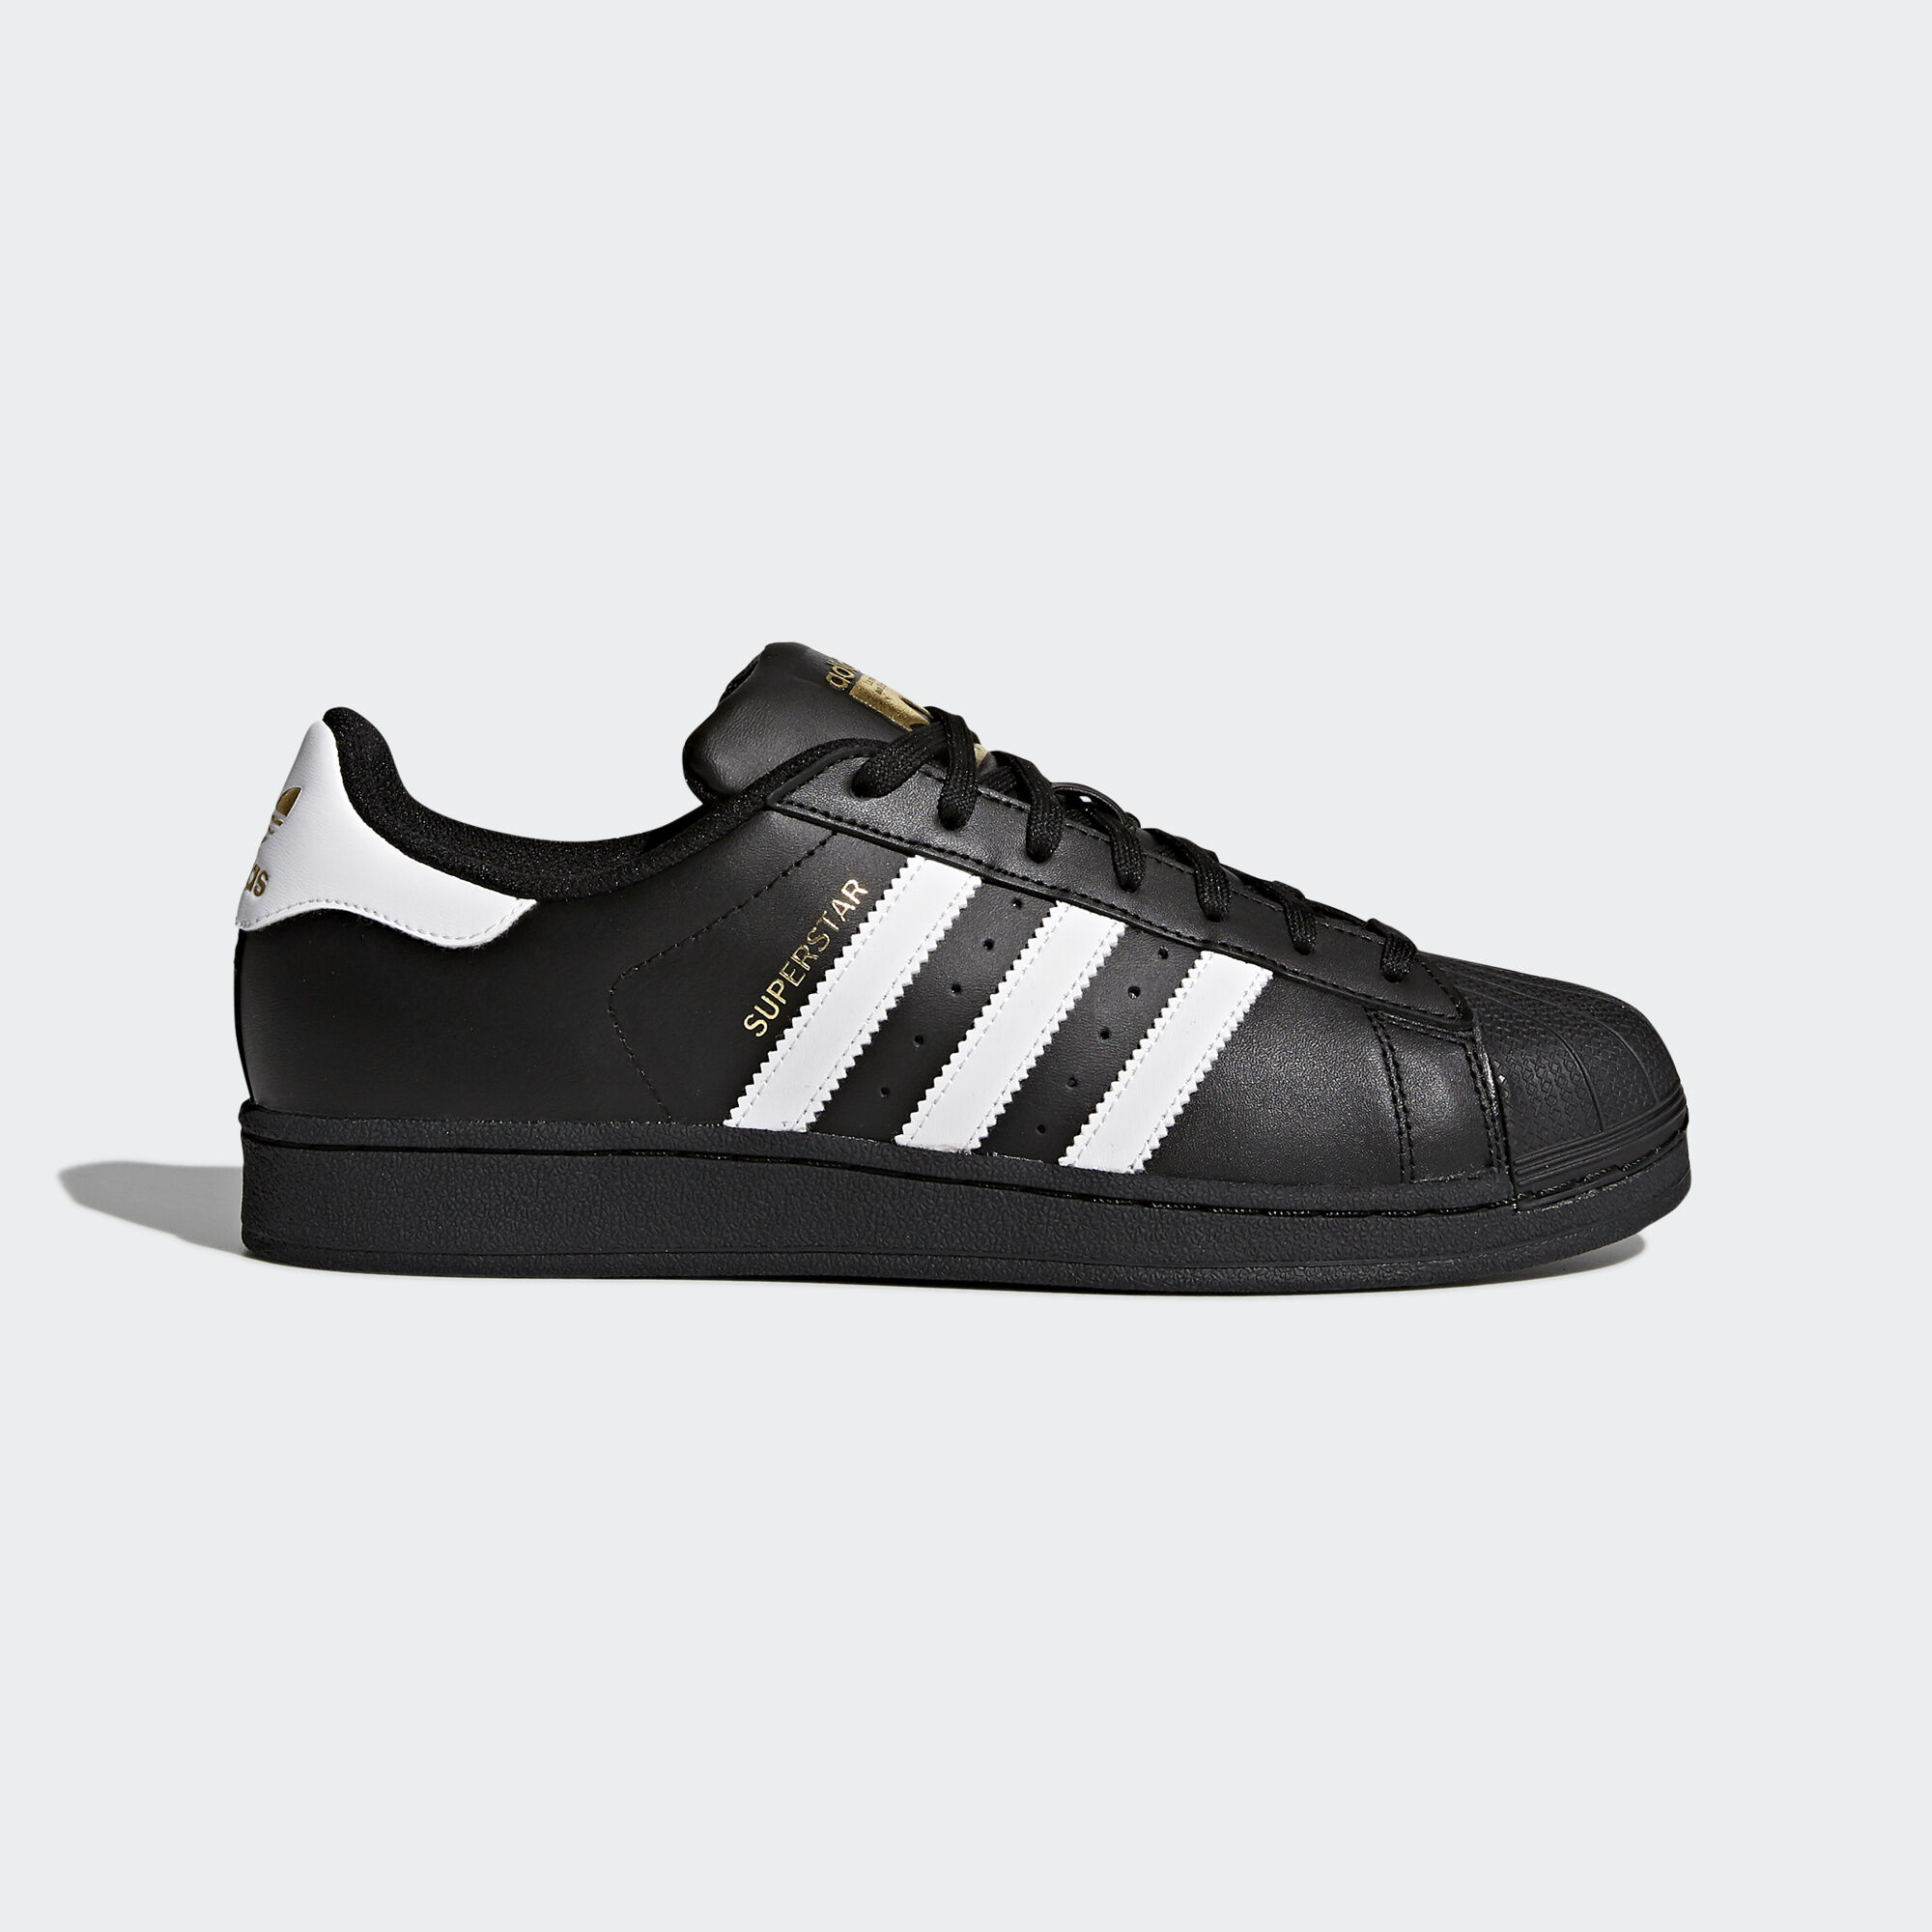 Adidas Original Shoes With Price